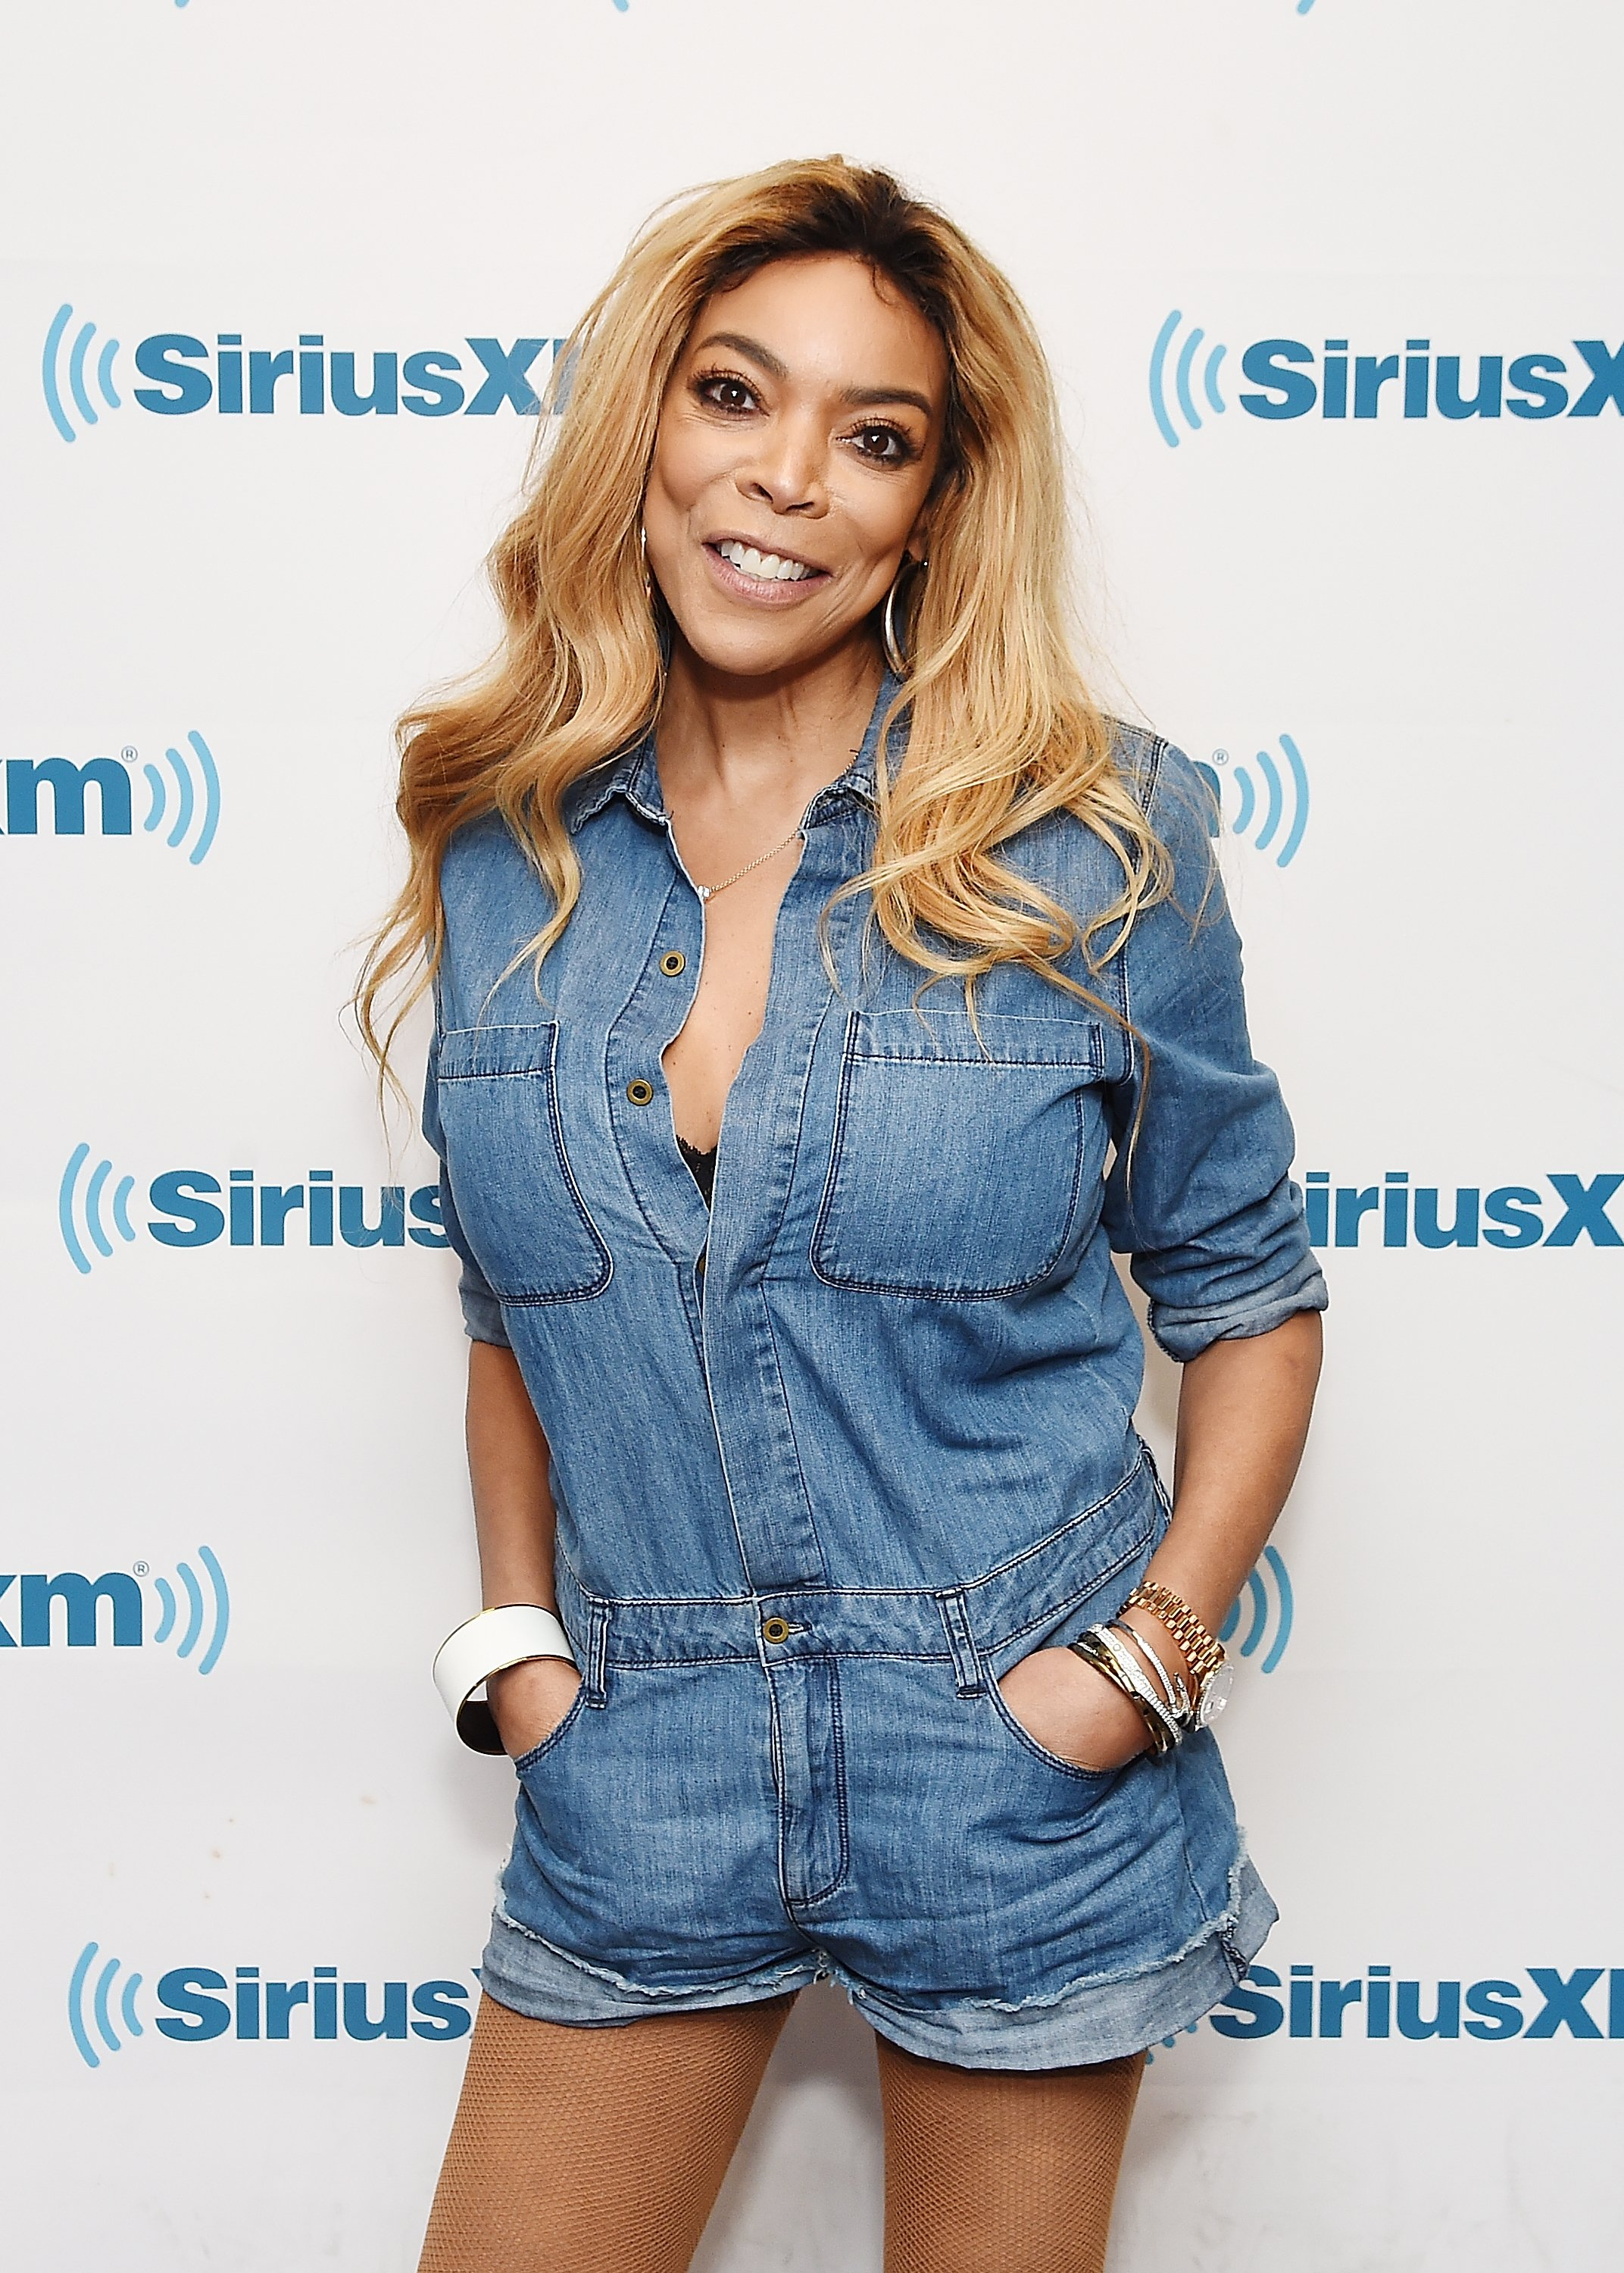 American televison host Wendy Williams visits SiriusXM Studios on July 13, 2017 in New York City | Photo: Getty Images